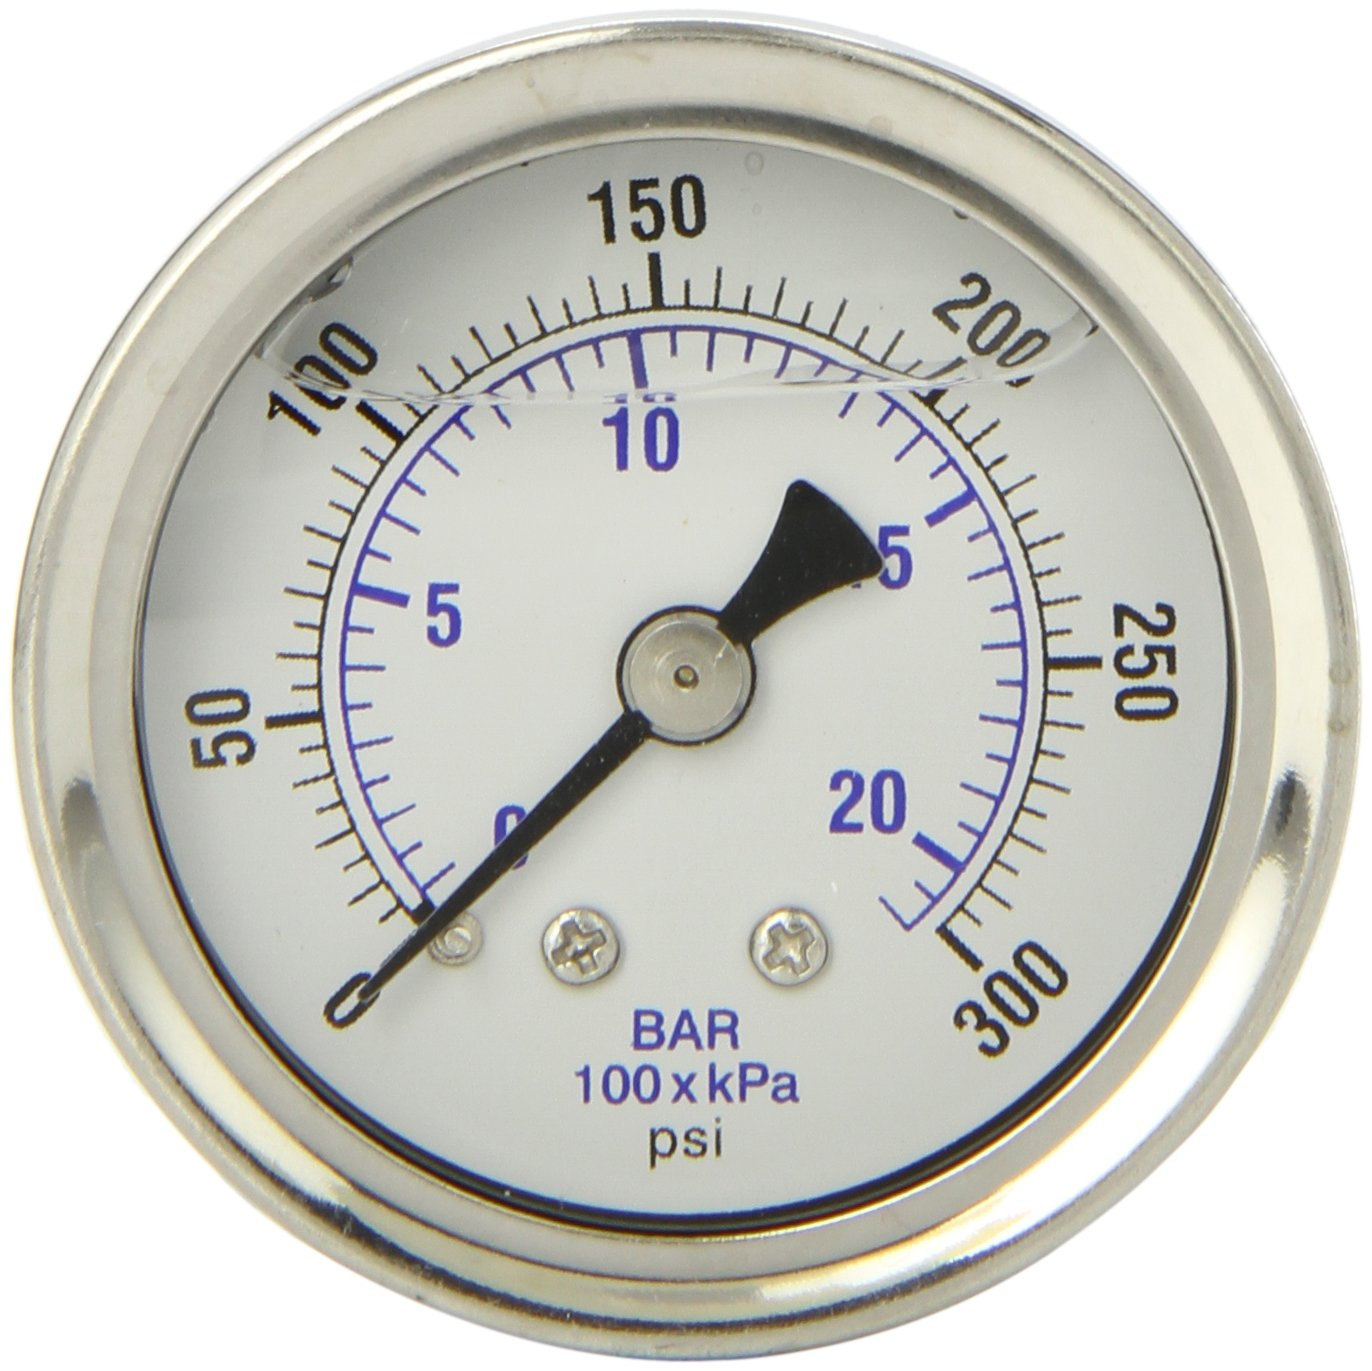 PIC Gauge 202L 158H 1.5 Dial 0 300 psi Range 1 8 Male NPT Connection Size Center Back Mount Glycerine Filled Pressure Gauge with a Stainless Steel Case Brass Internals Stainless Steel Bezel and Polycarbonate Lens